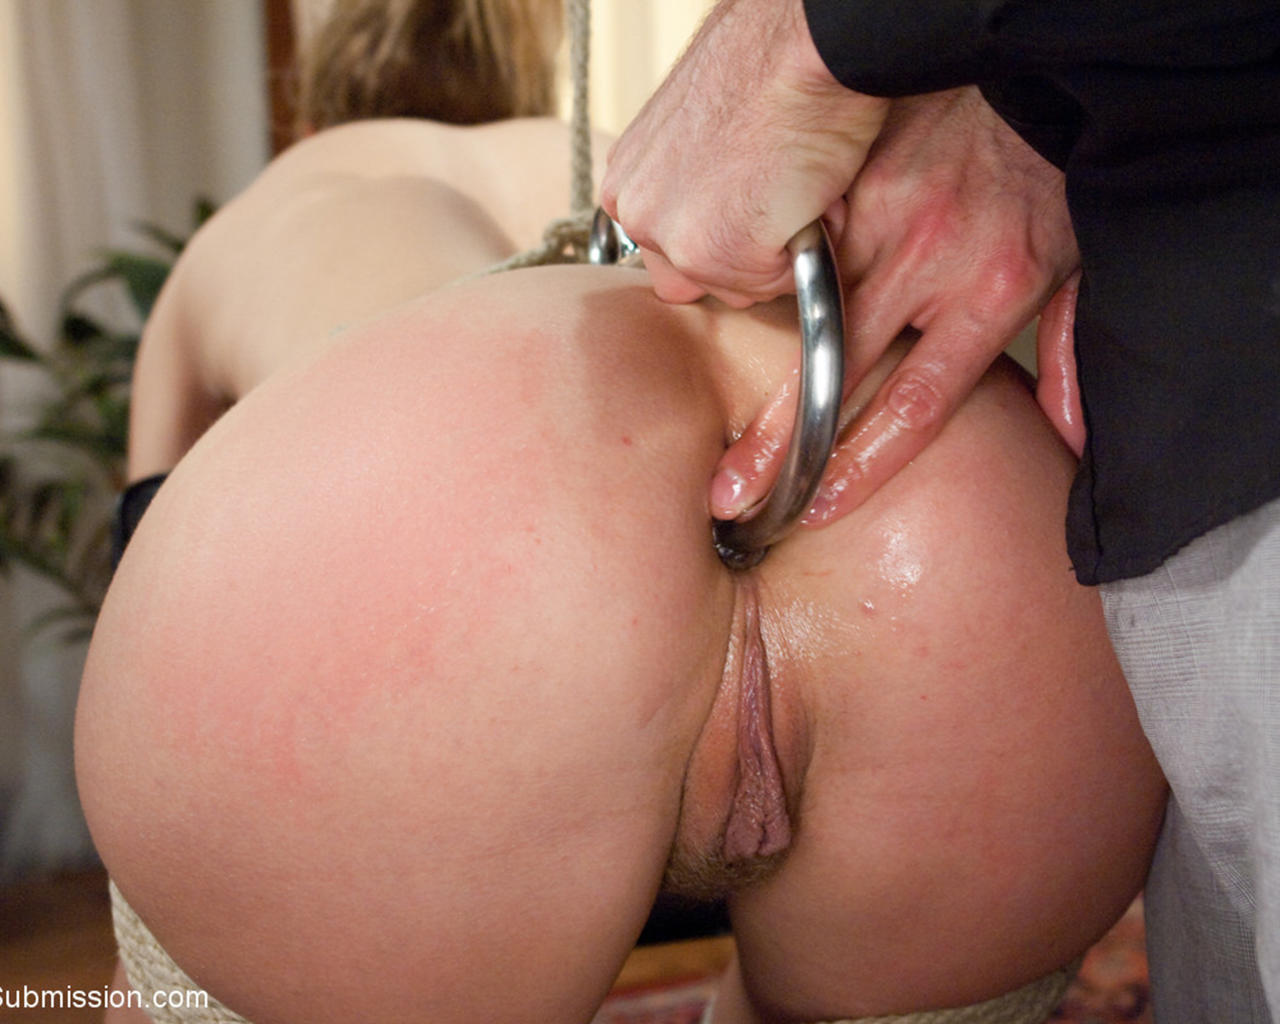 anal submissive